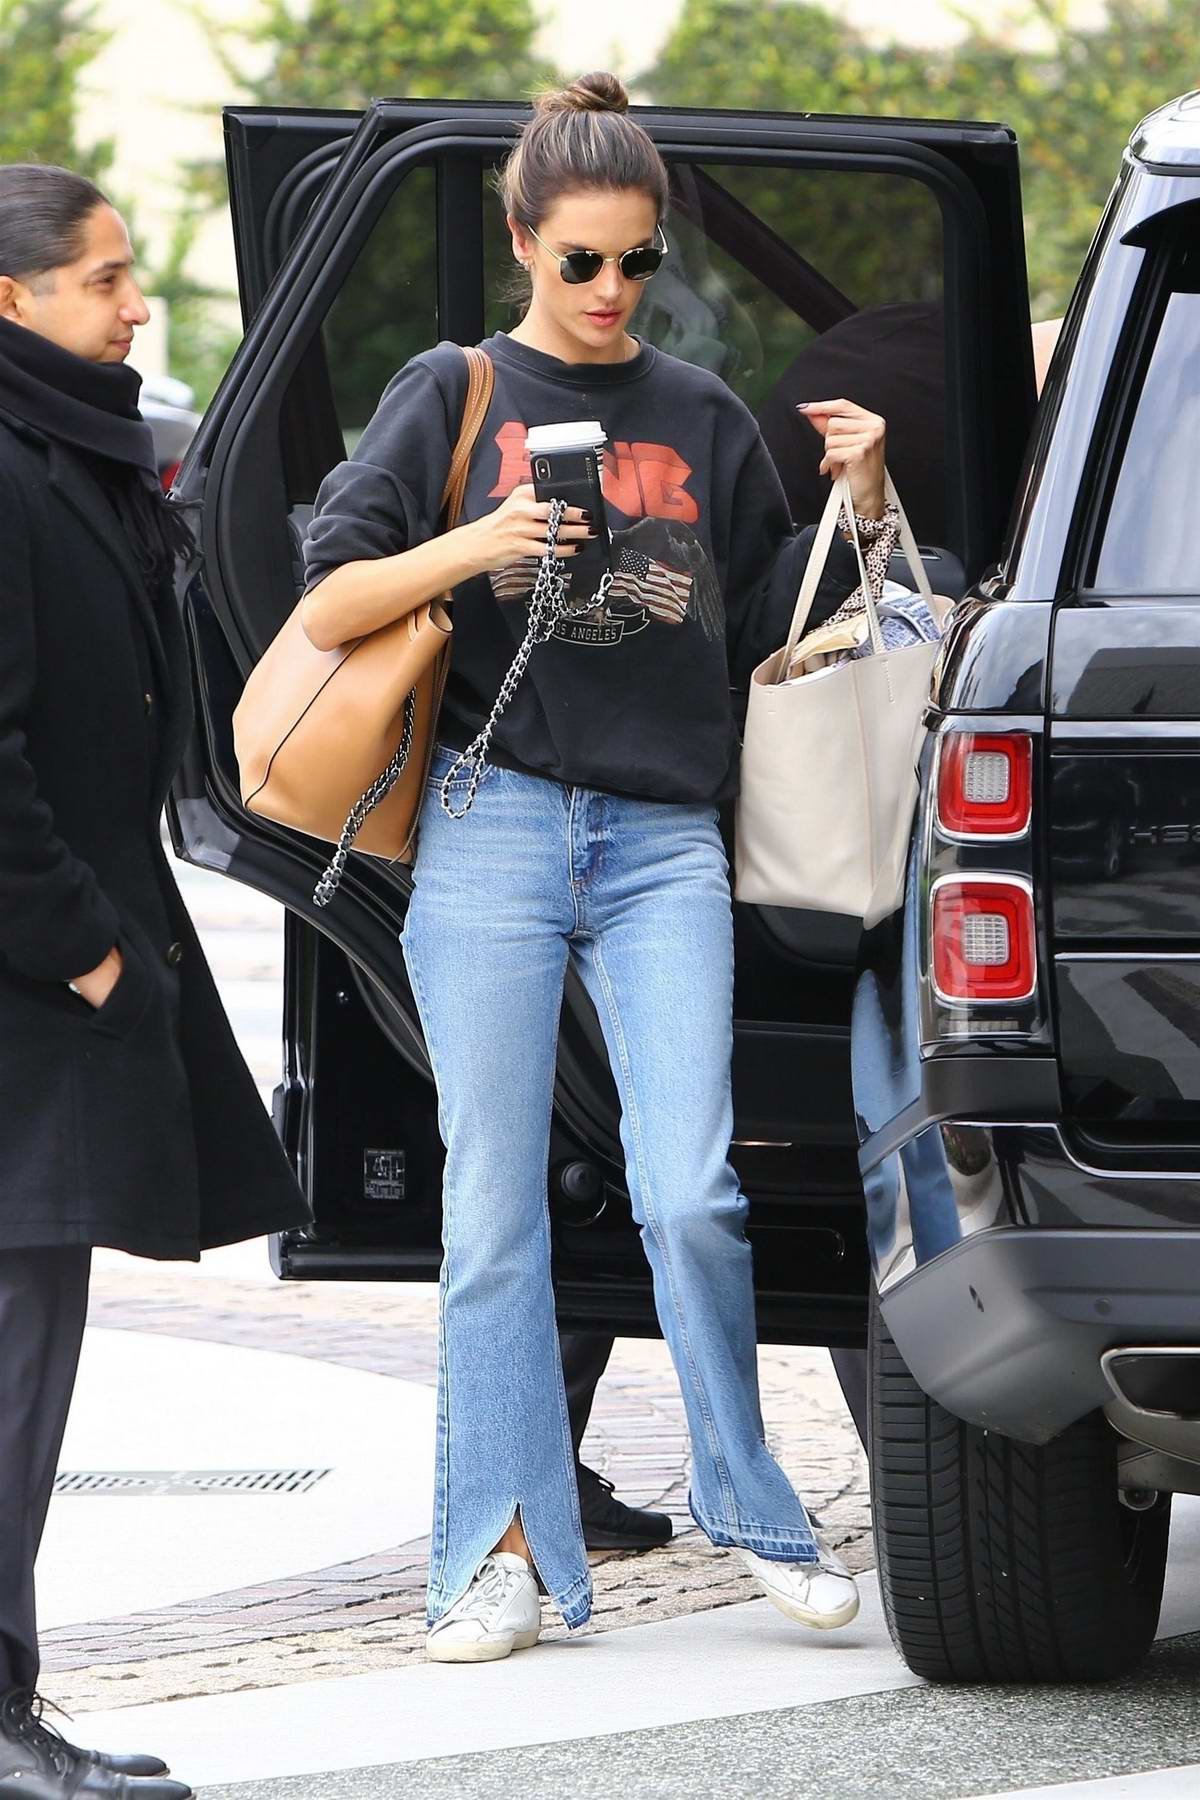 Alessandra Ambrosio keeps it trendy with a sweatshirt, jeans and white Golden Goose sneakers while arriving for a meeting in Beverly Hills, Los Angeles